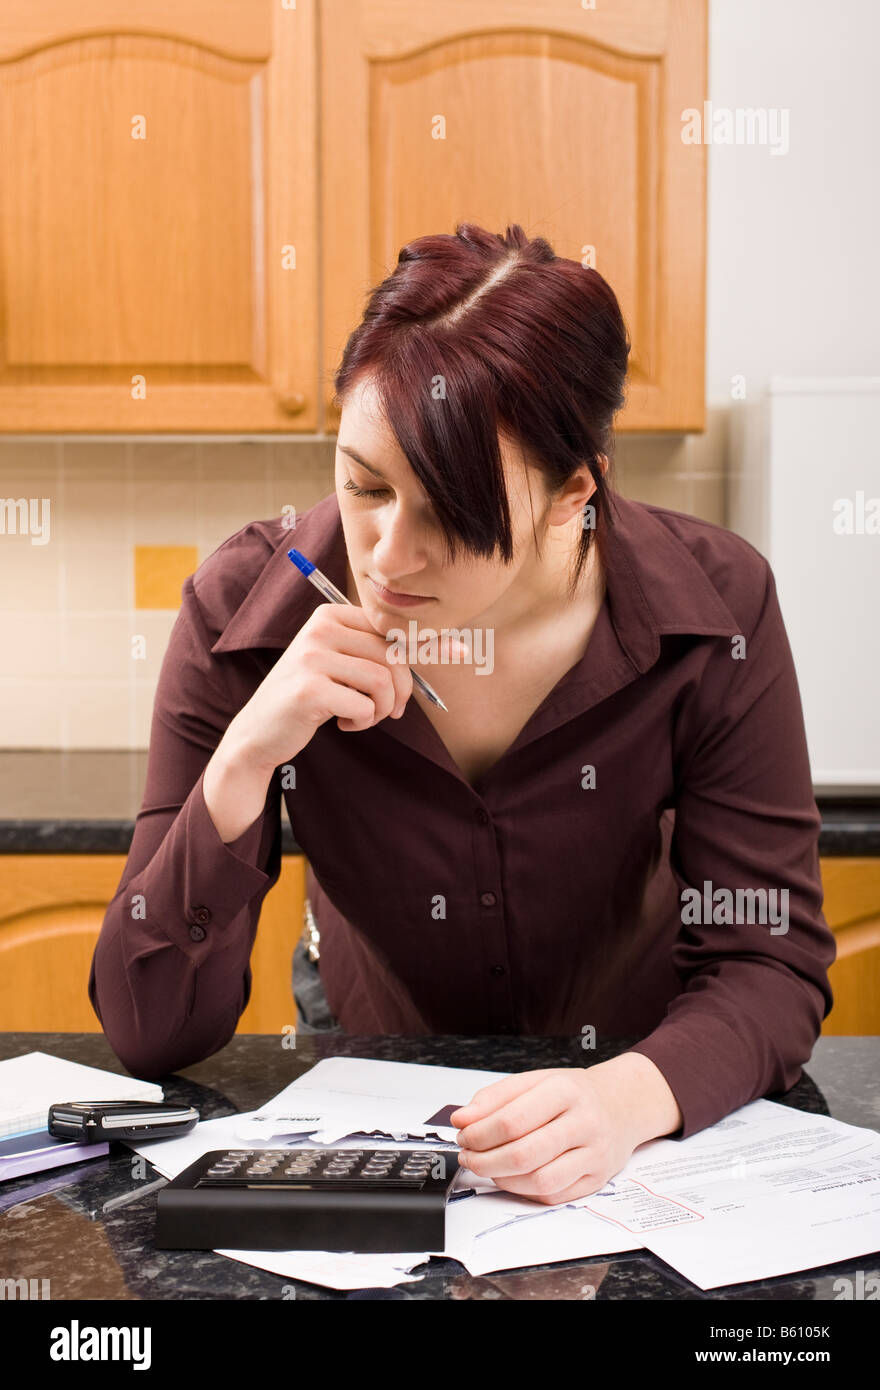 Young woman concentrating on household finances and budget with bills and calculator MR PR - Stock Image